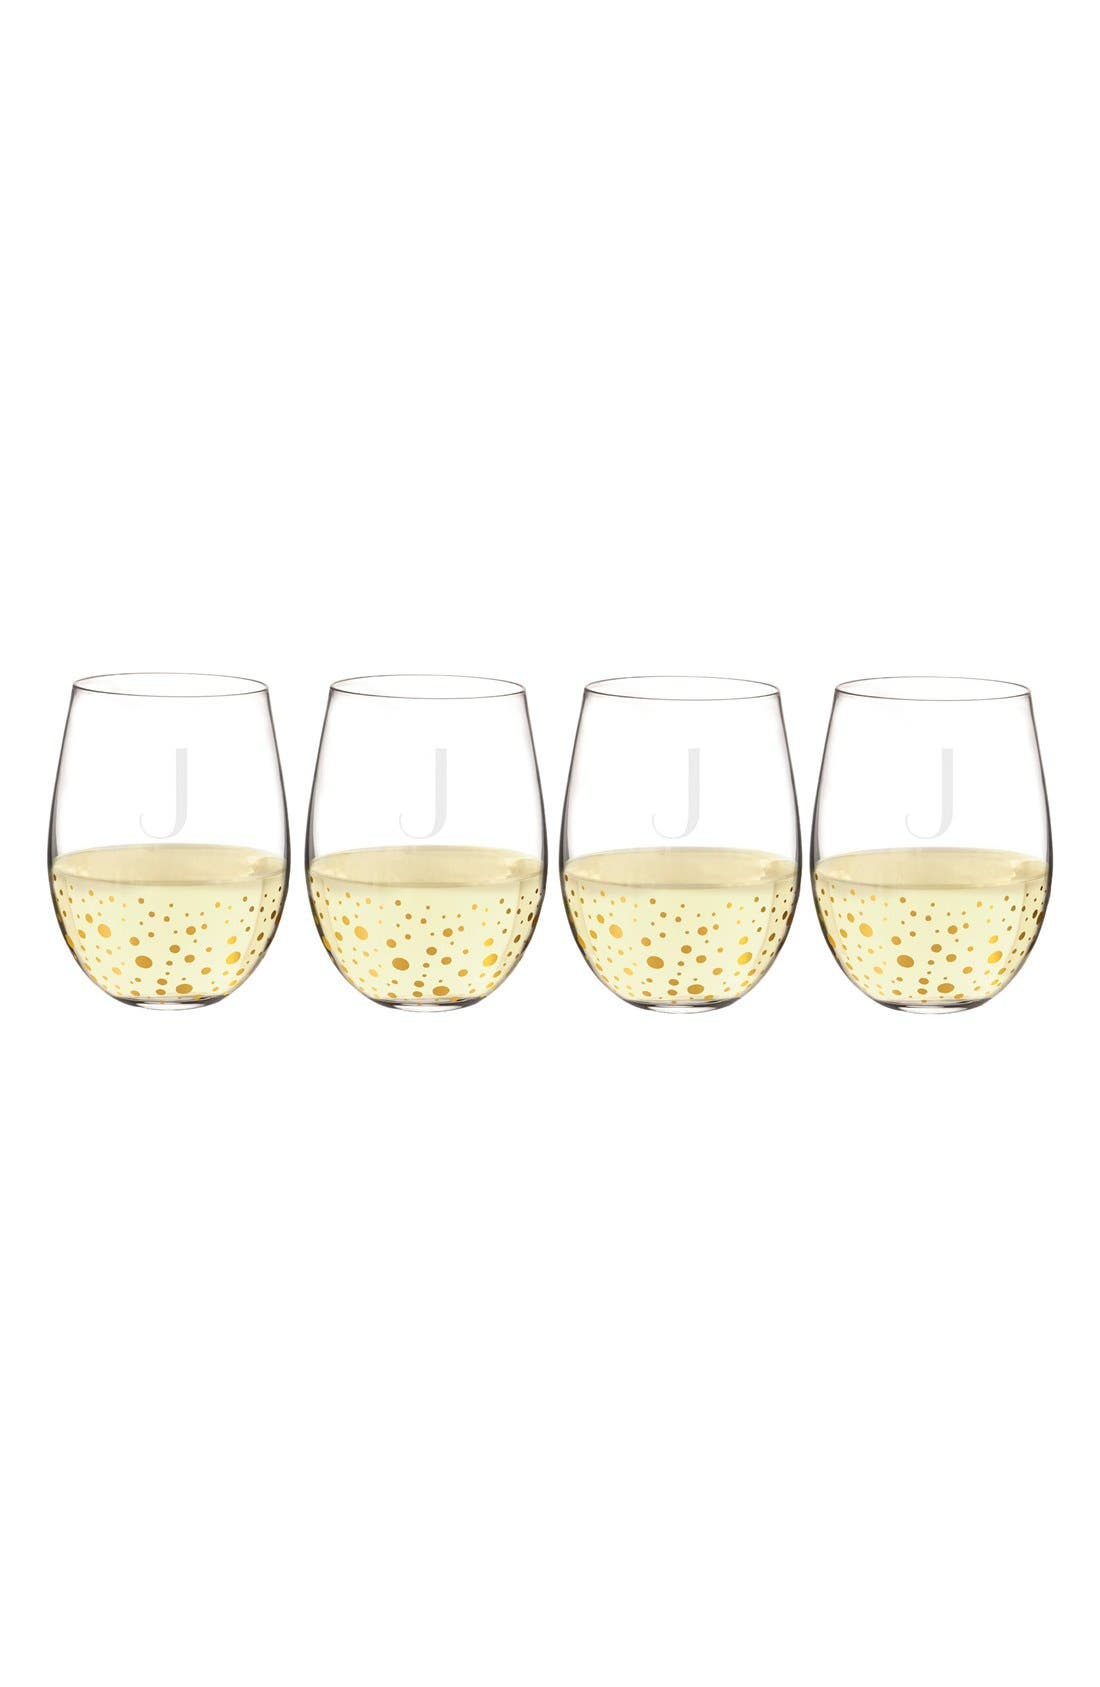 Cathy's Concept Set of 4 Gold Dot Stemless Wine Glasses